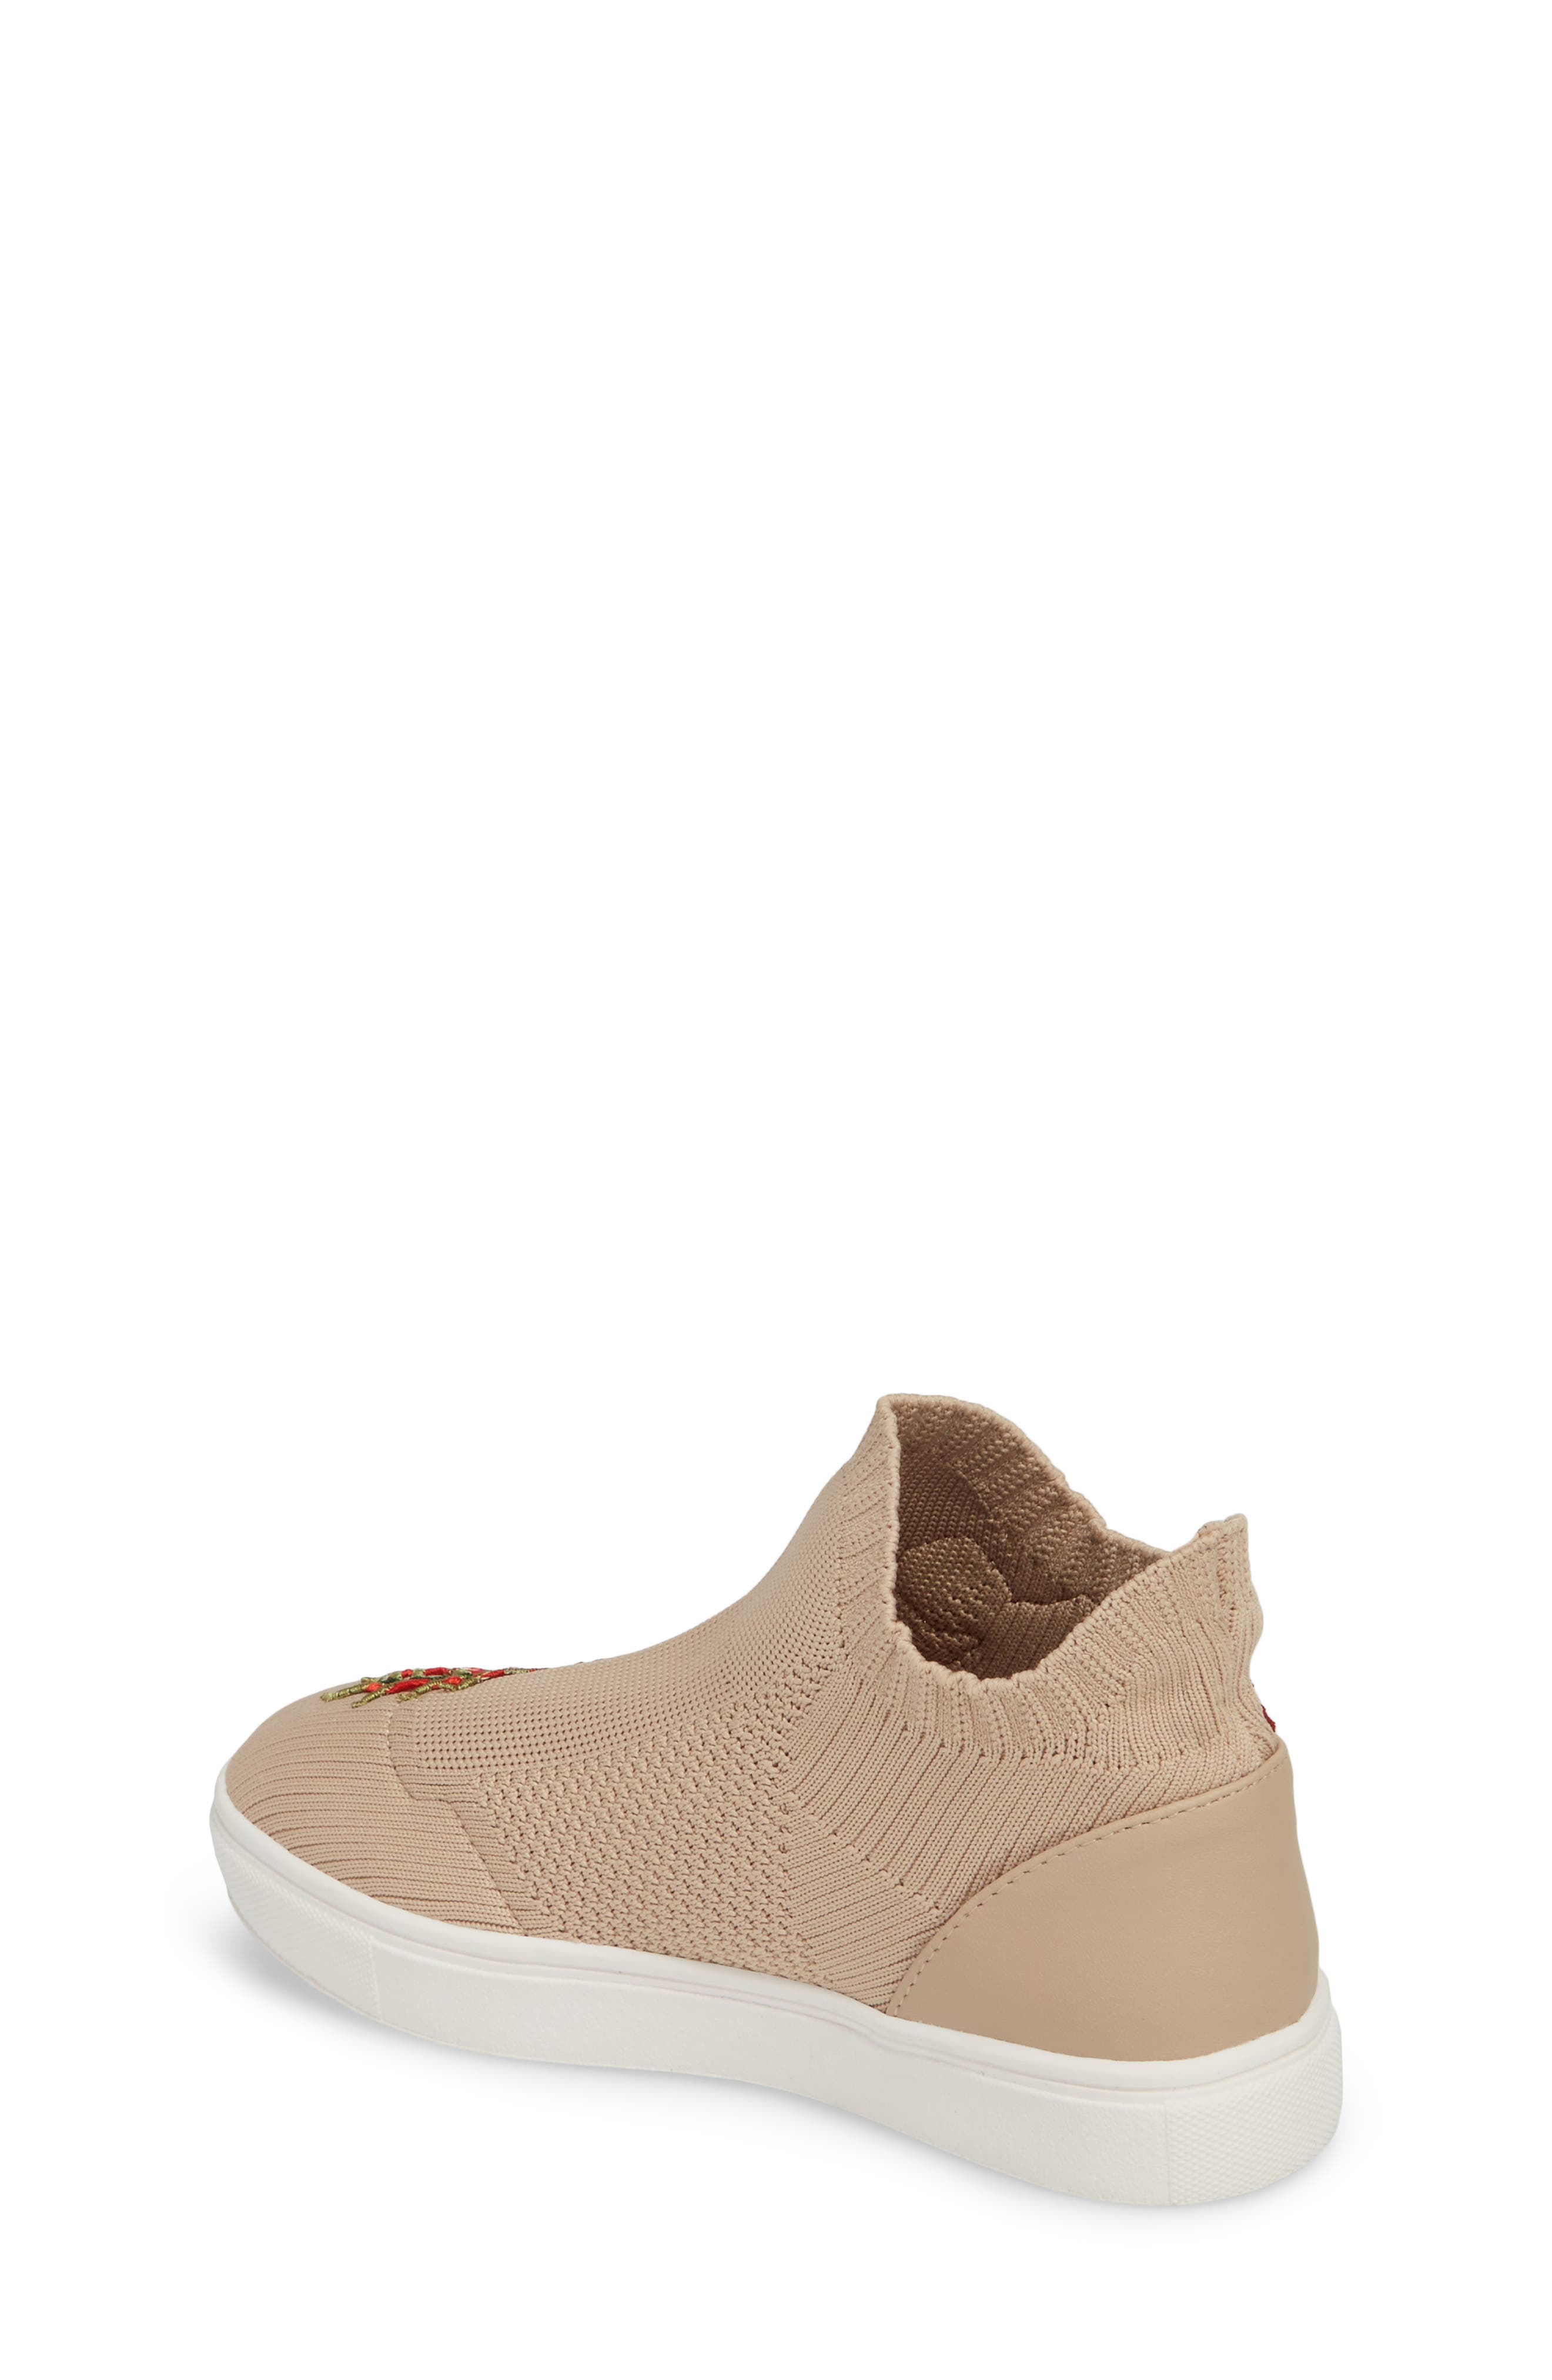 July Embroidered Knit Bootie,                             Alternate thumbnail 2, color,                             Blush